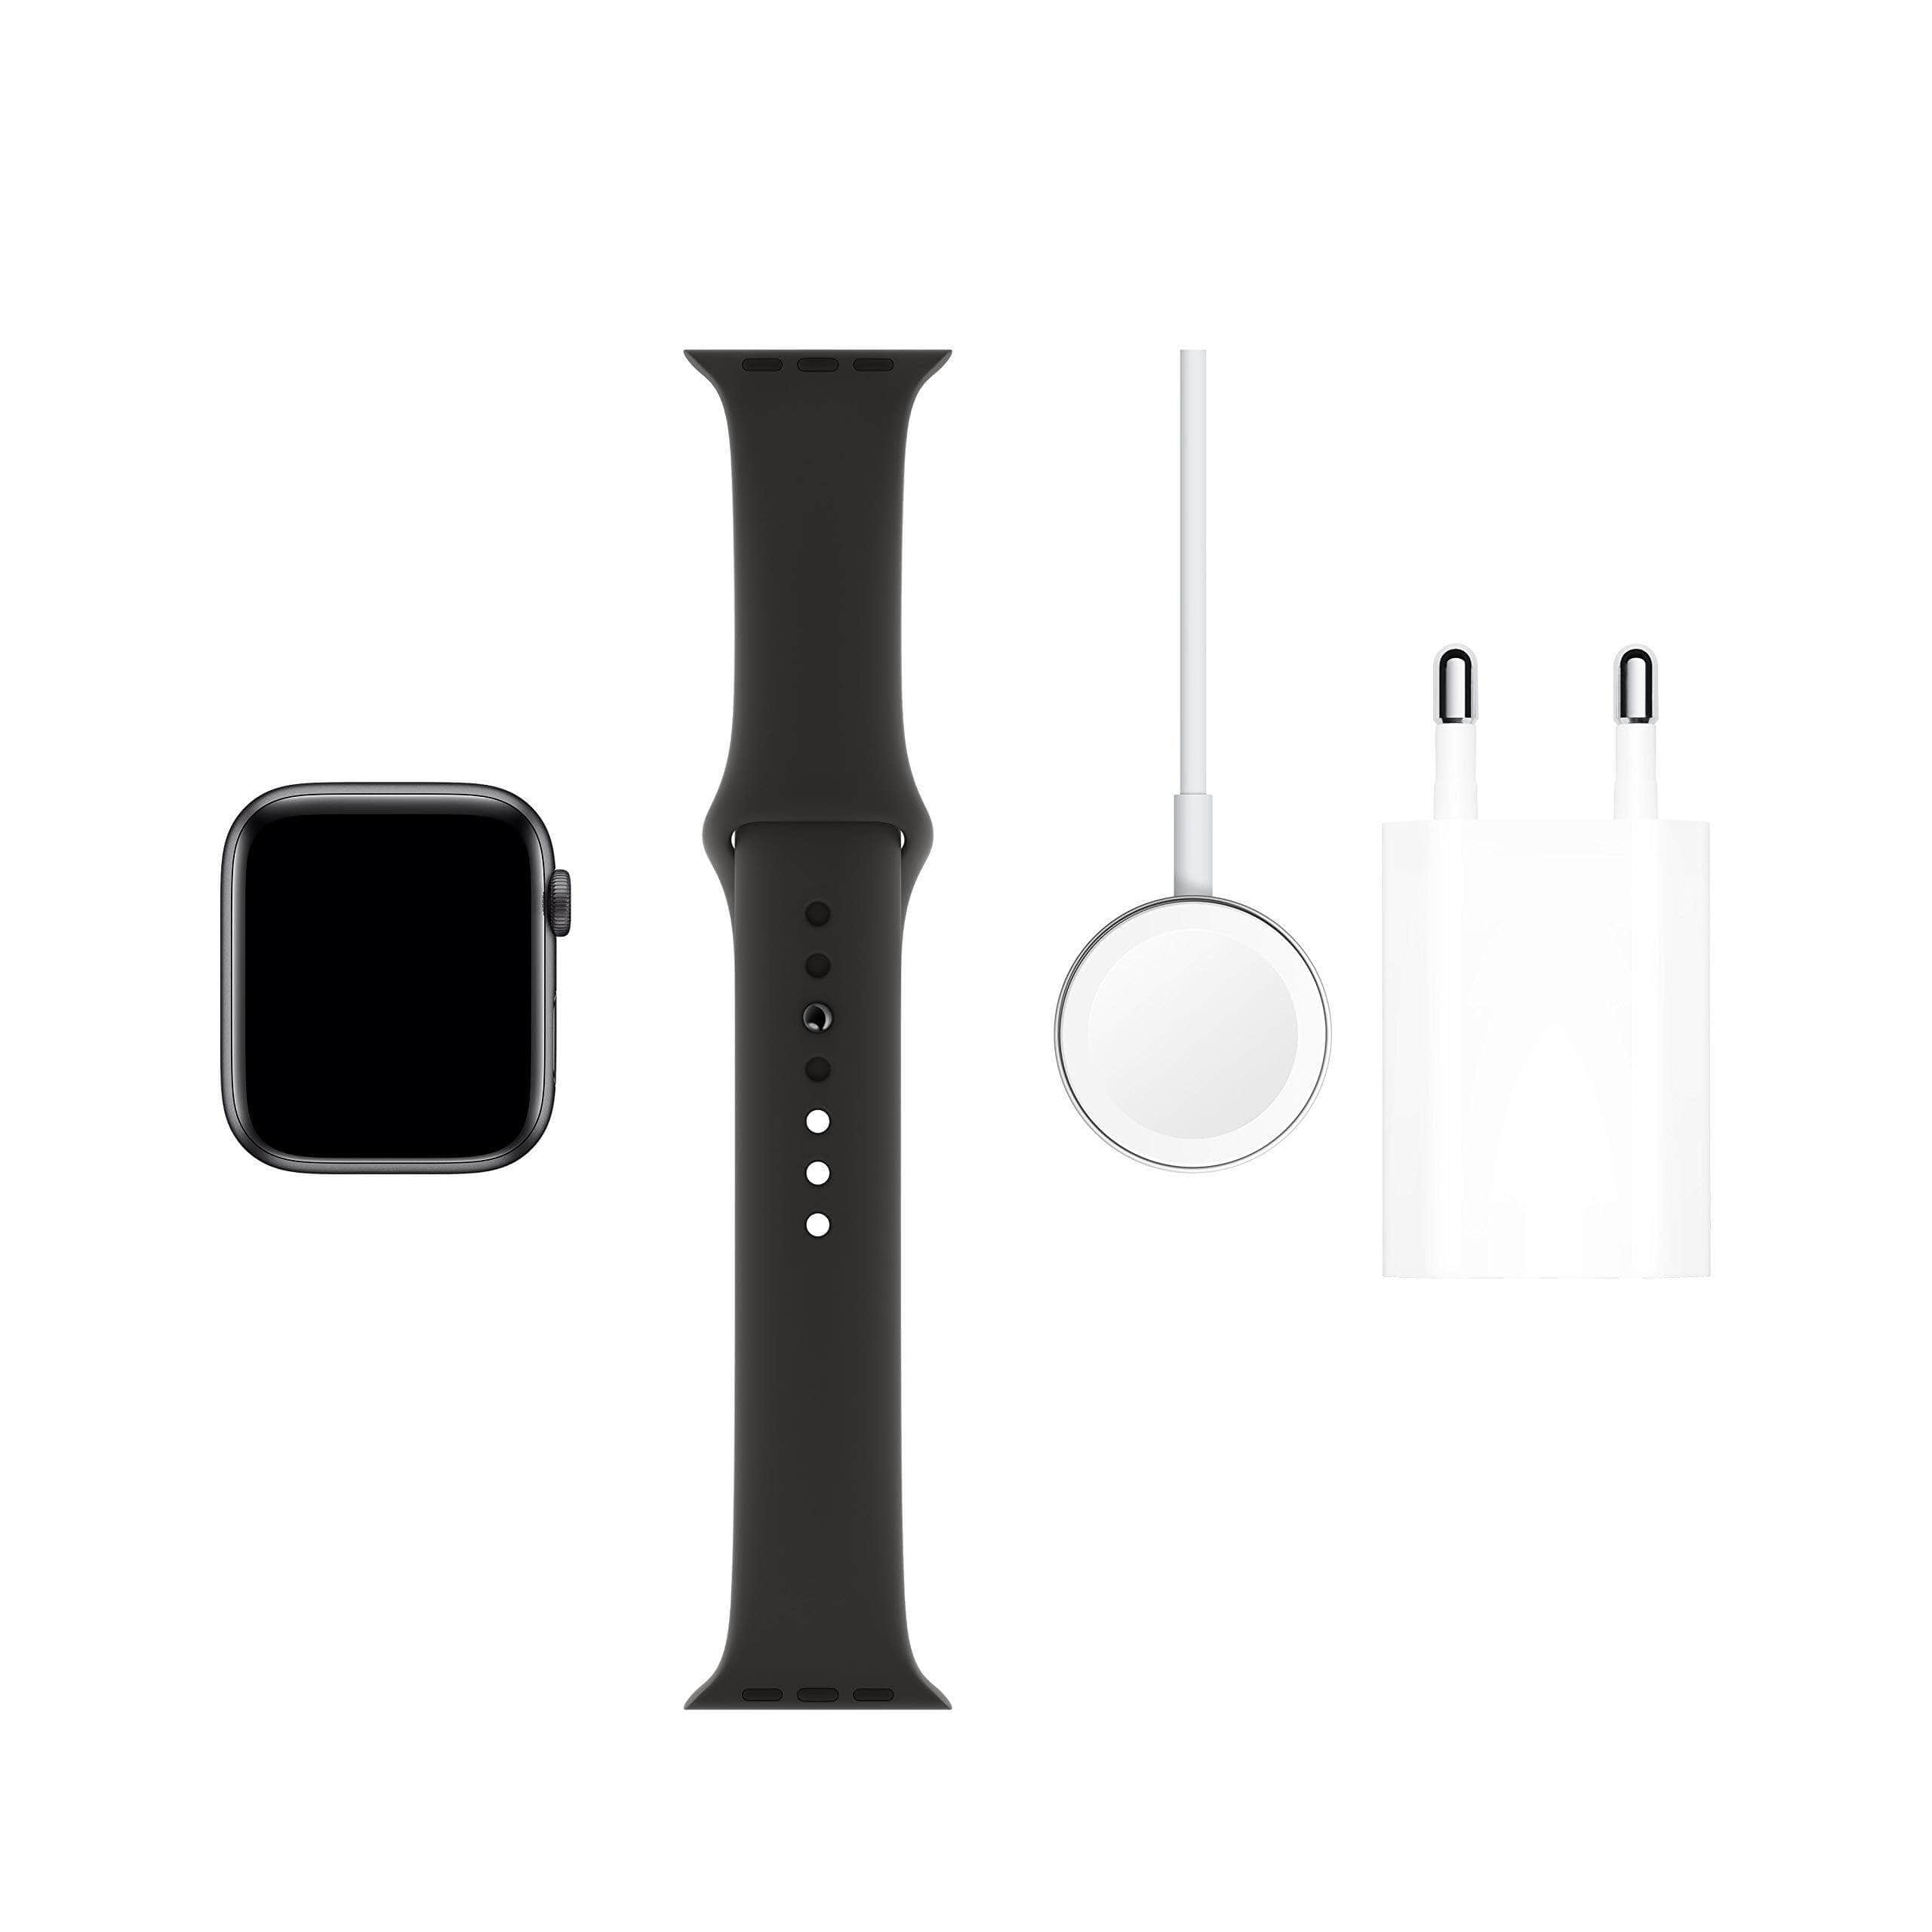 Apple Watch Series 5 (GPS, 44 mm) Aluminio en Gris espacial - Correa Deportiva Negro